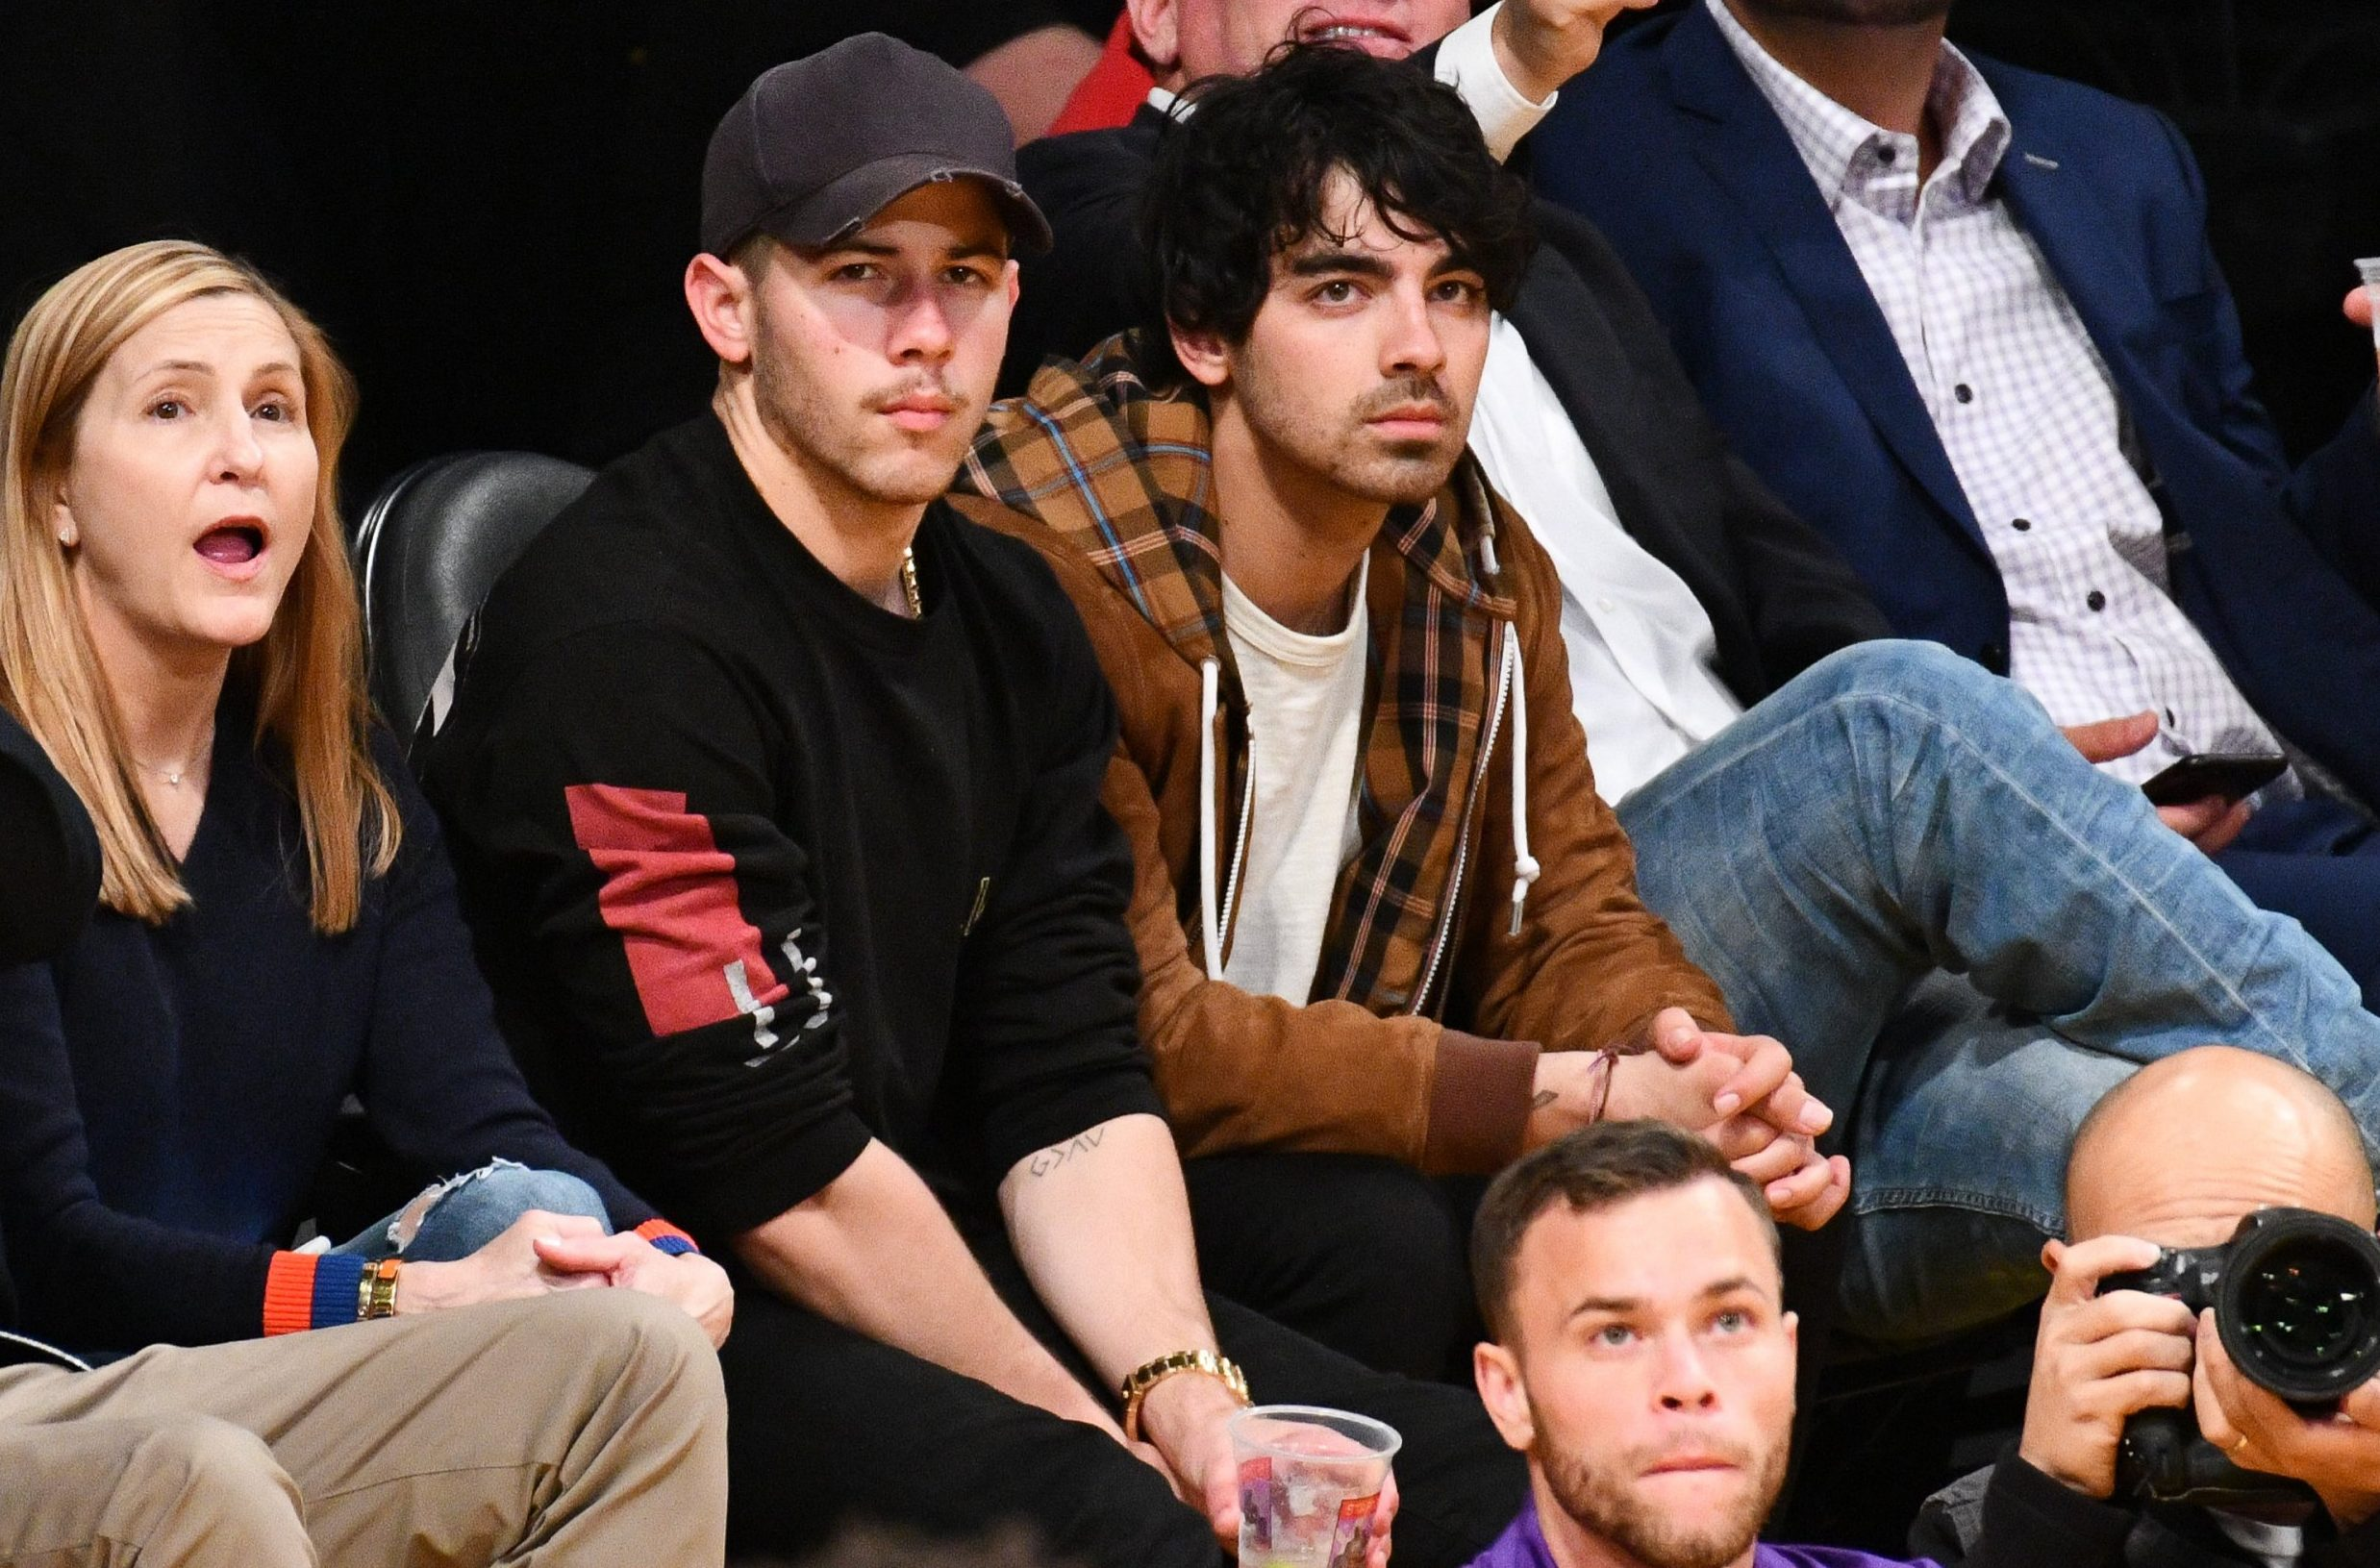 LOS ANGELES, CALIFORNIA - NOVEMBER 07: Nick Jonas and Joe Jonas attend a basketball game between the Los Angeles Lakers and and the Minnesota Timberwolves at Staples Center on November 07, 2018 in Los Angeles, California. (Photo by Allen Berezovsky/Getty Images)